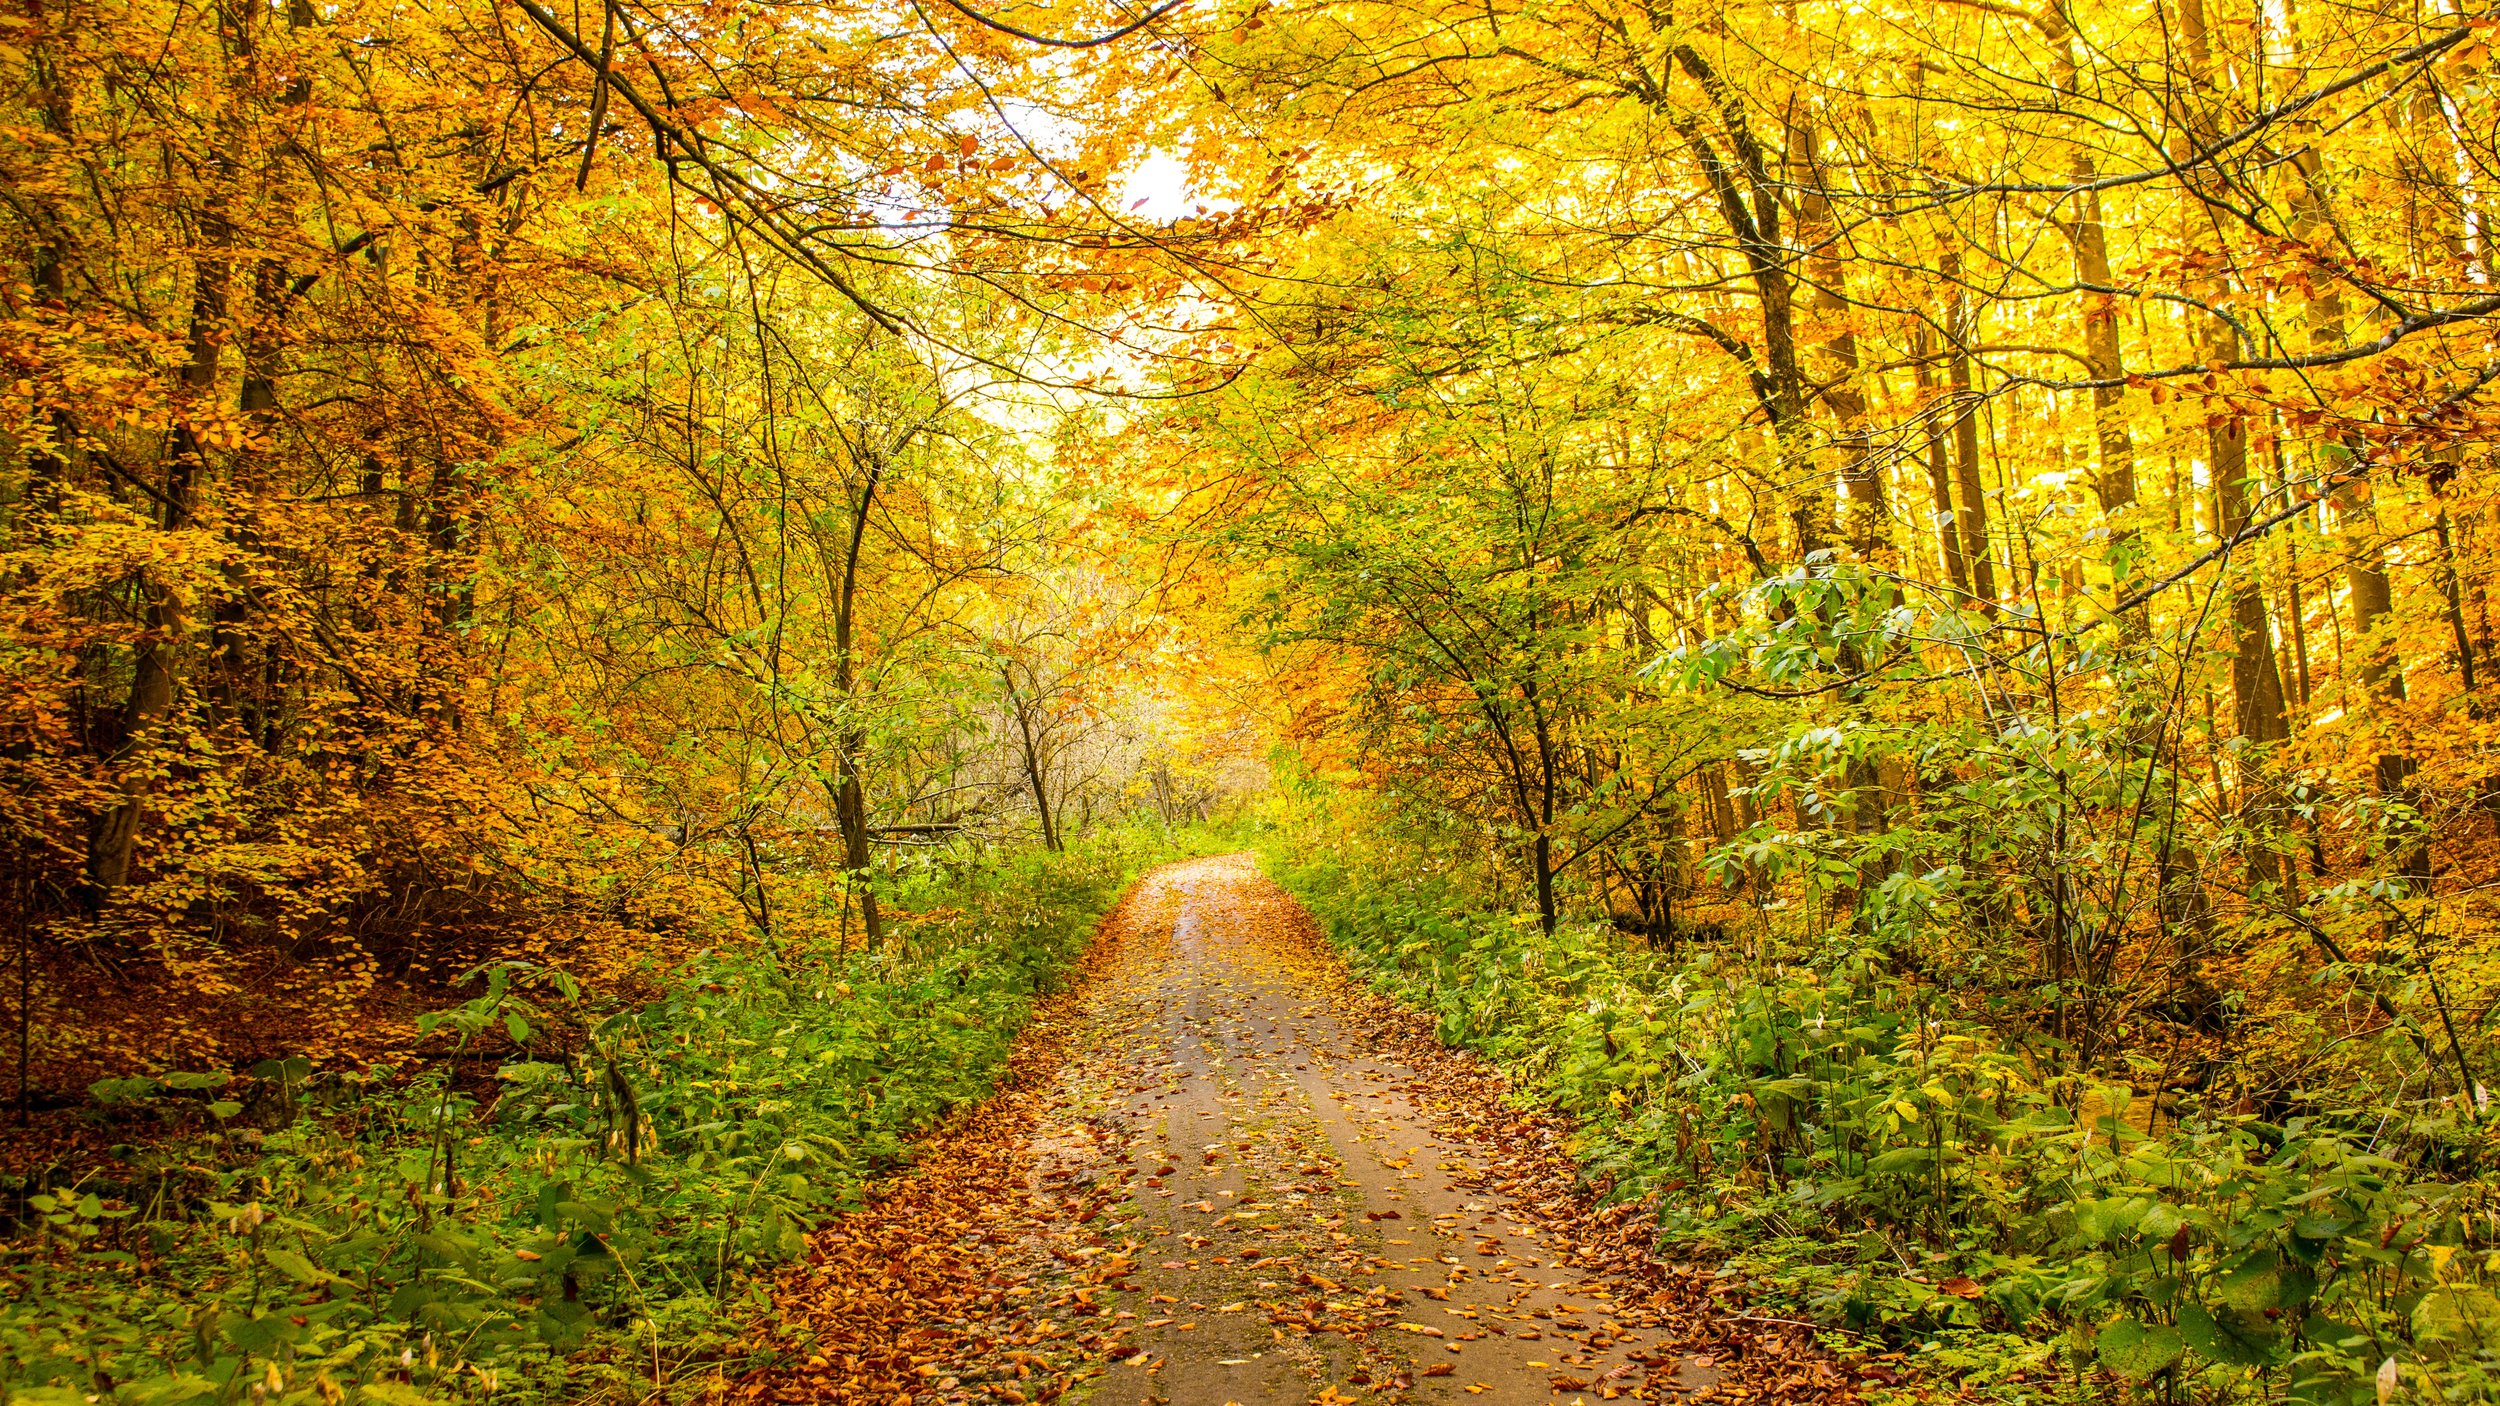 Your Brain on Nature: Forest bathing and reduced stress - Studies show shinrin-yoku, also known as forest bathing or time spent in green spaces, can reduce the stress hormone cortisol and increase your immune defense system.Mother Earth News, January 2013